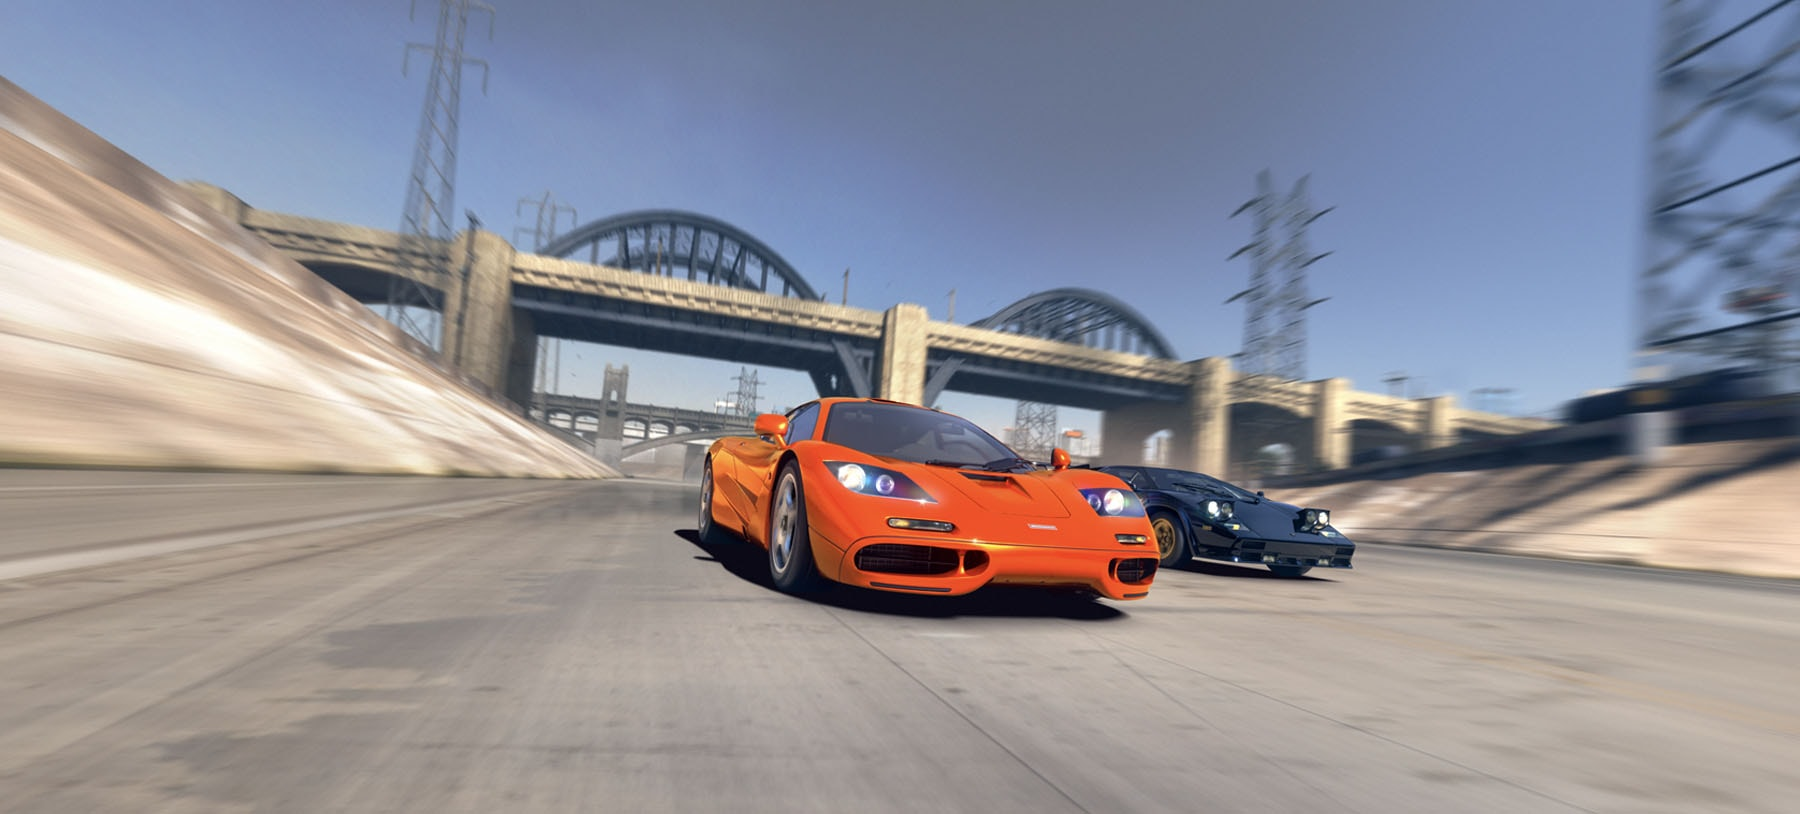 csr racing 2 mod apk 2018 download